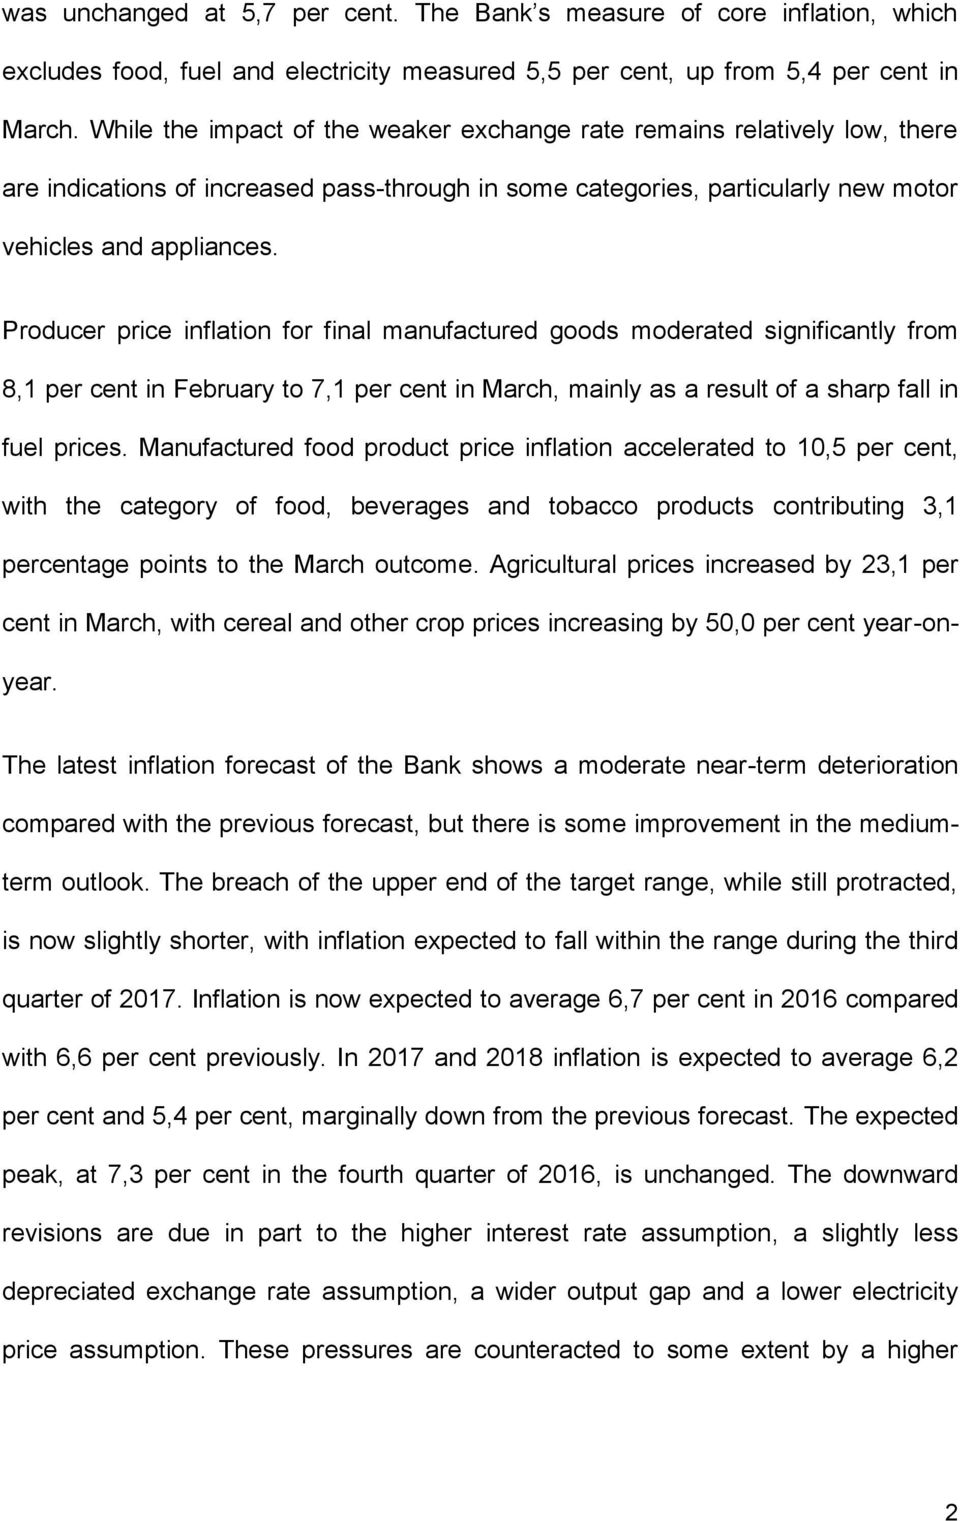 Producer price inflation for final manufactured goods moderated significantly from 8,1 per cent in February to 7,1 per cent in March, mainly as a result of a sharp fall in fuel prices.